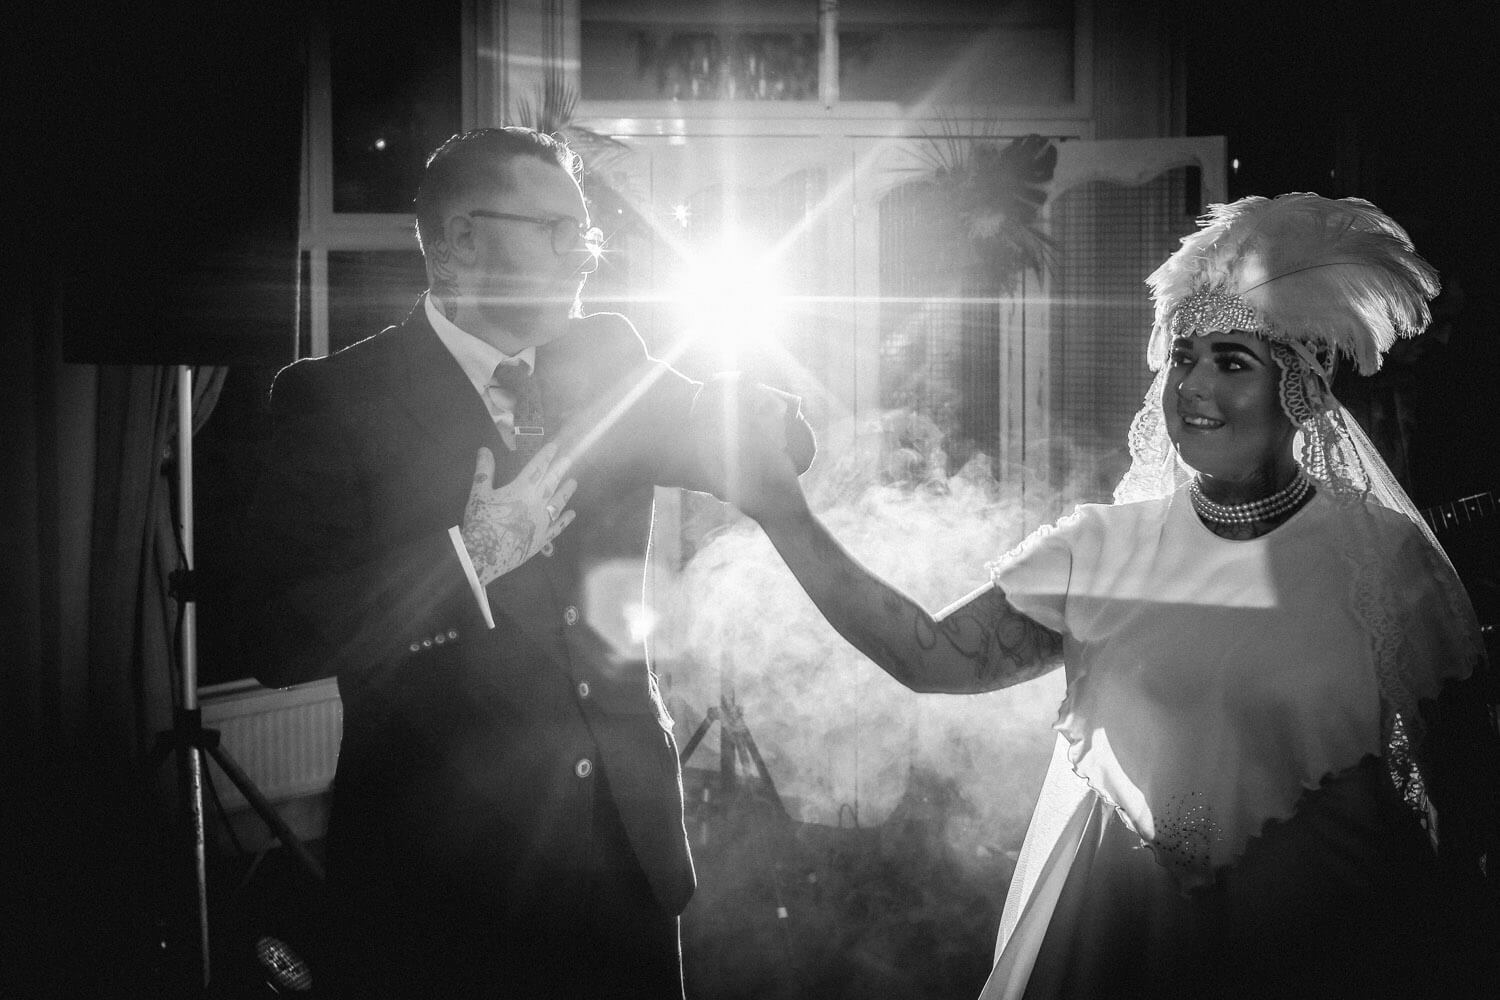 Vintage wedding first dance in black and white with smoke